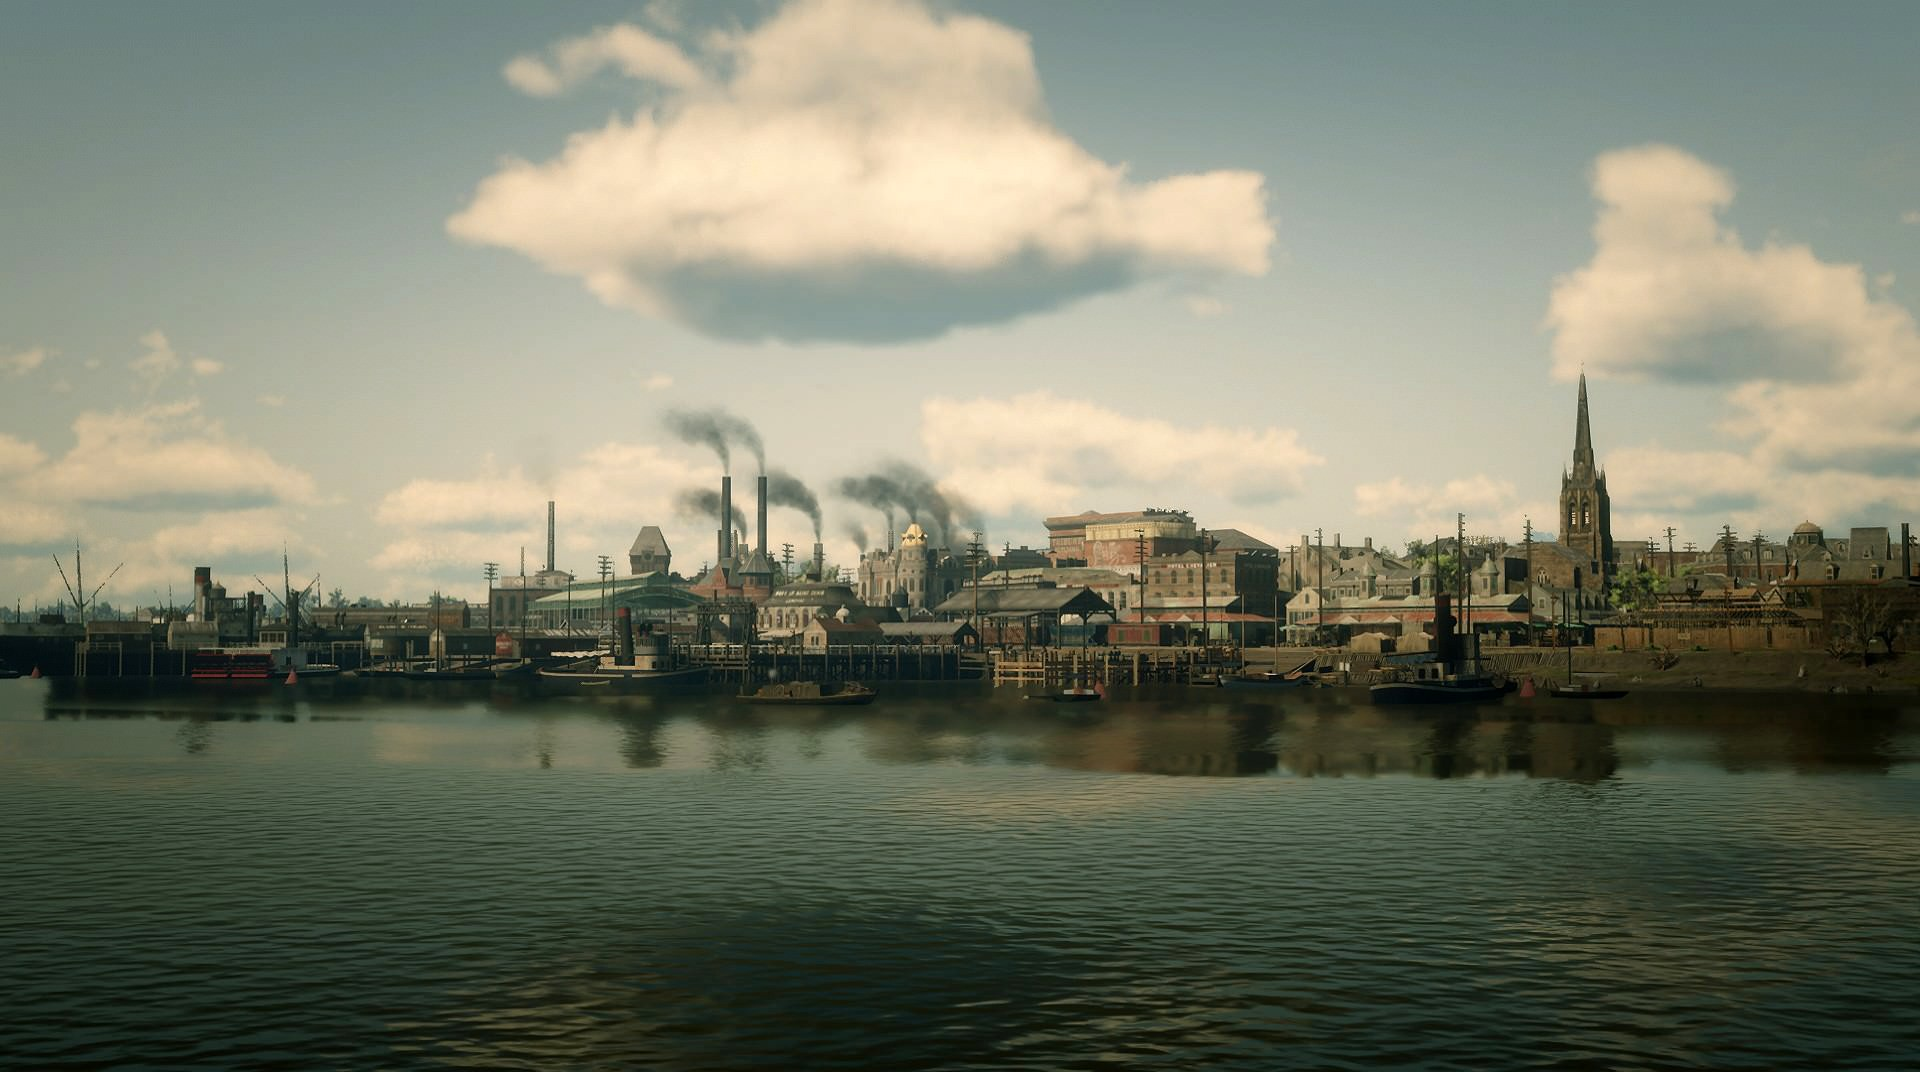 A city in Red Dead Redemption 2 seen from the water.